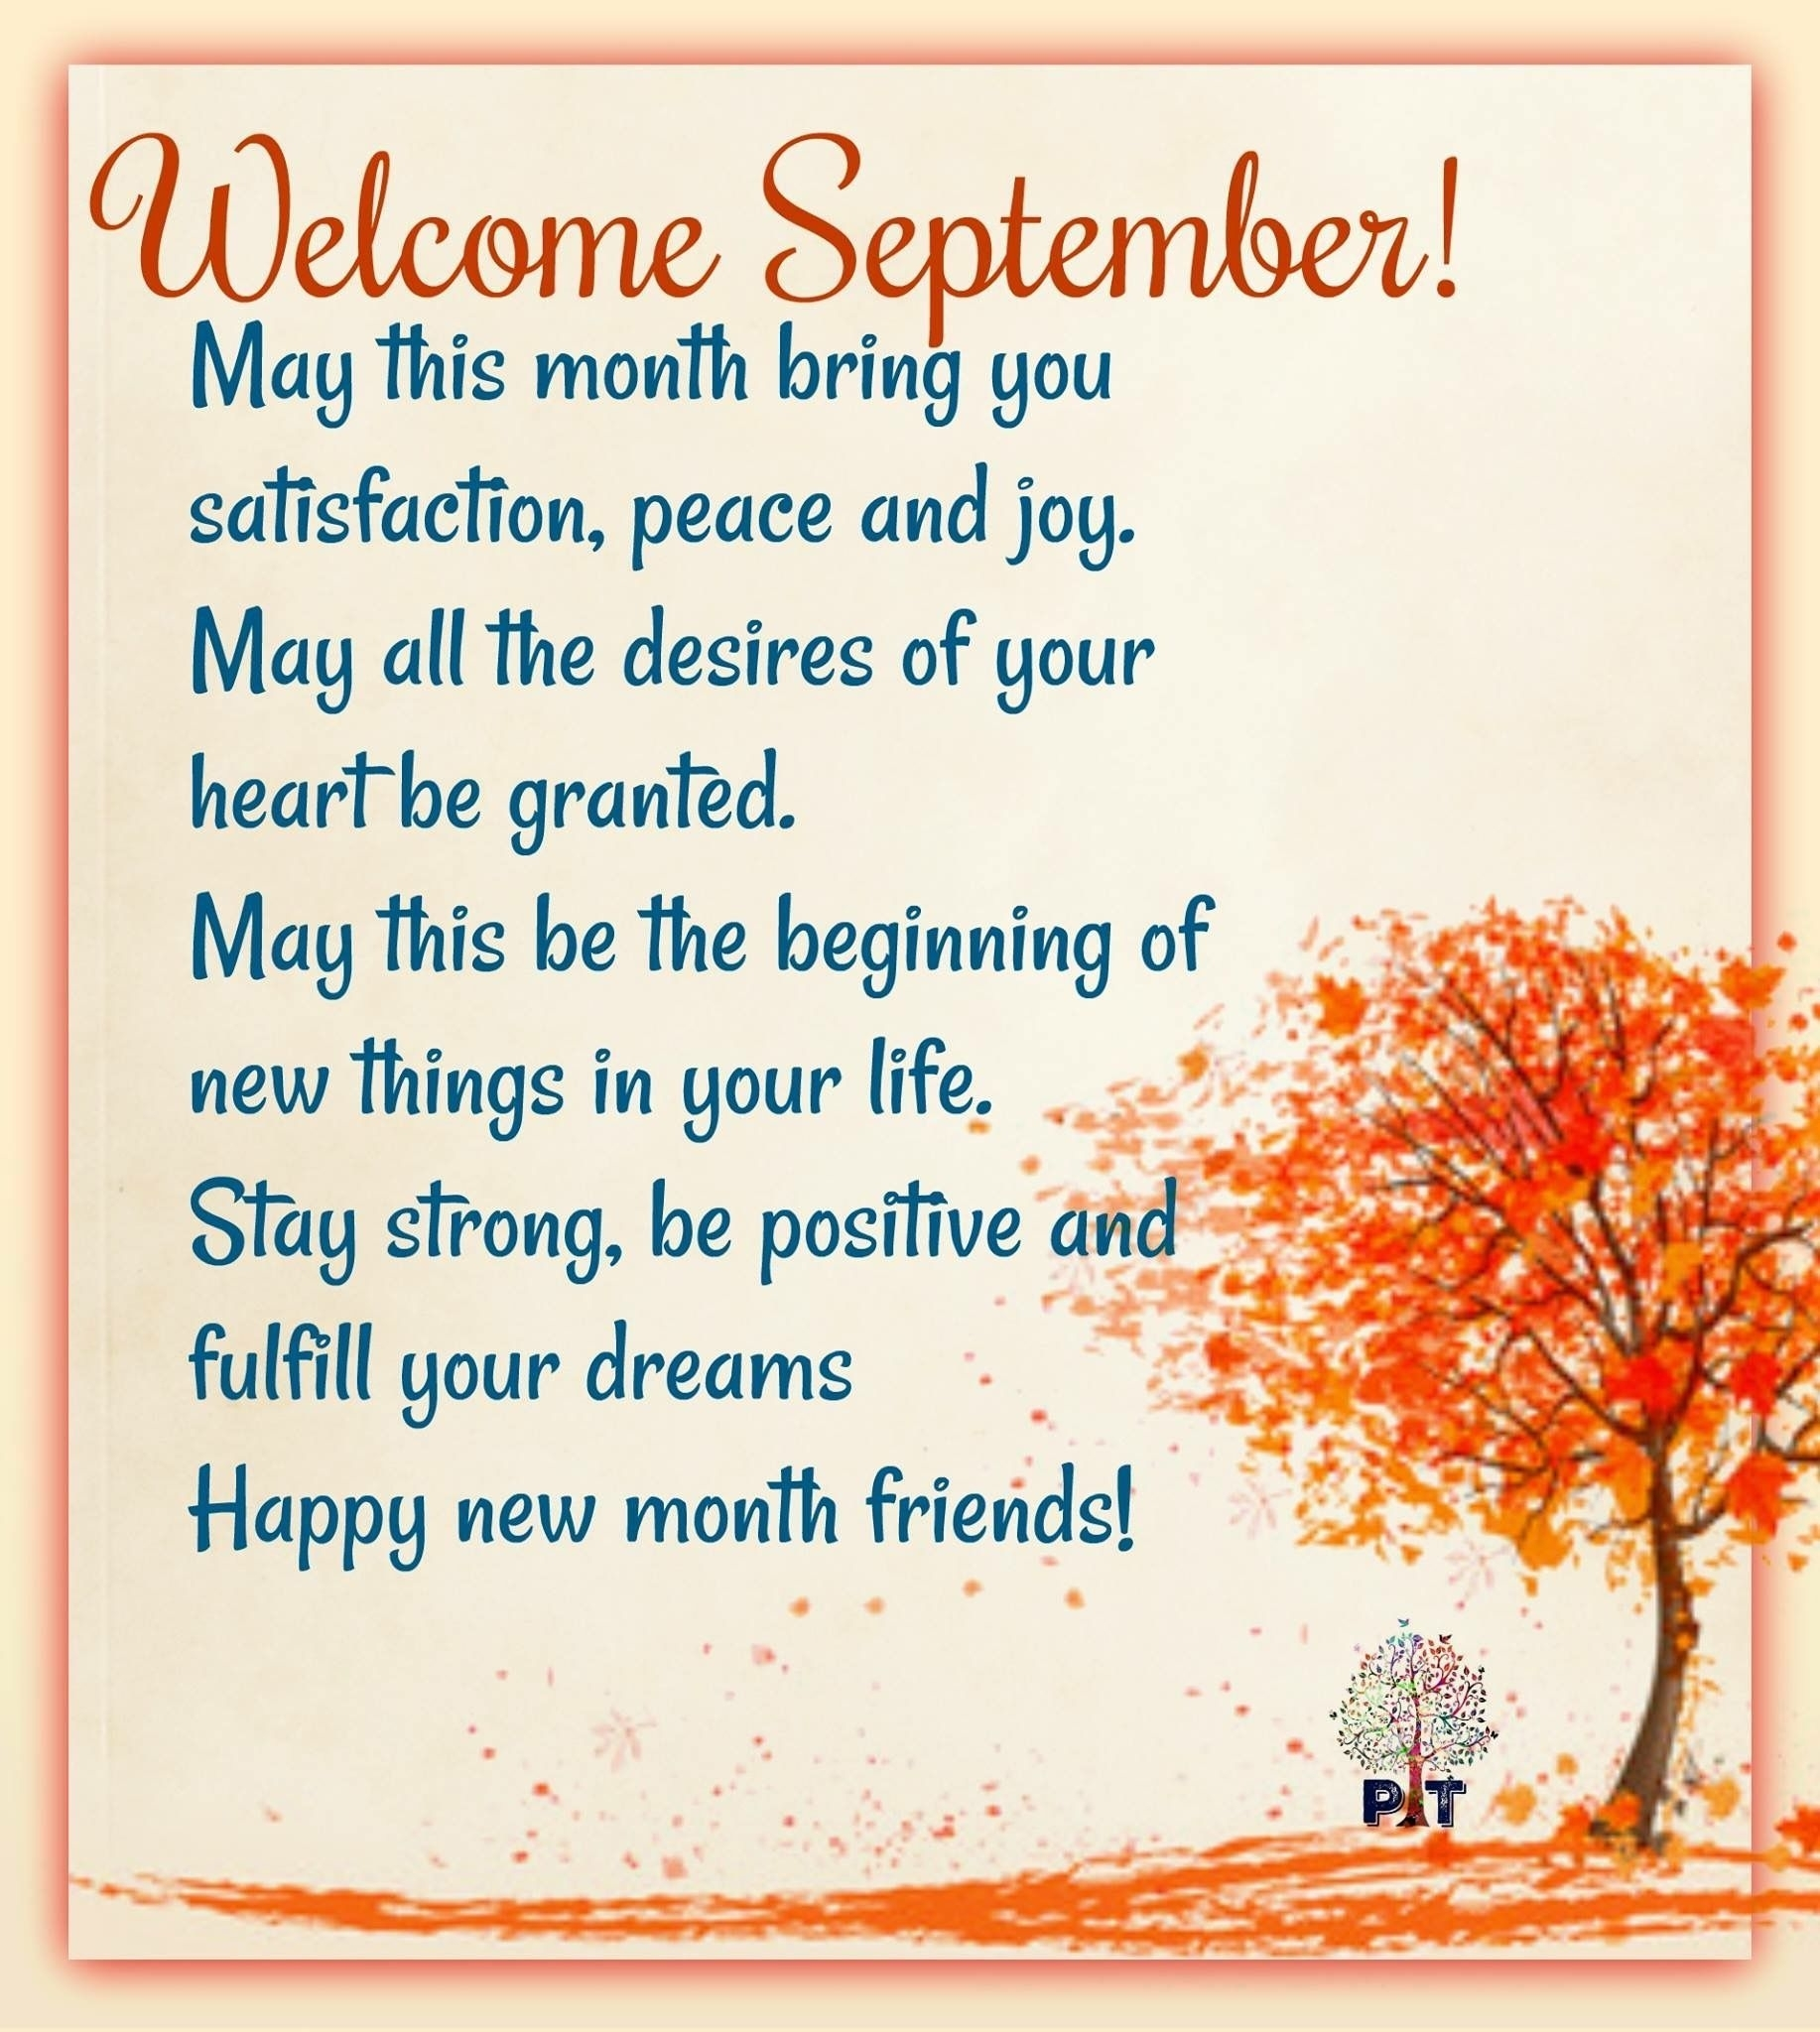 September New Month Quotes